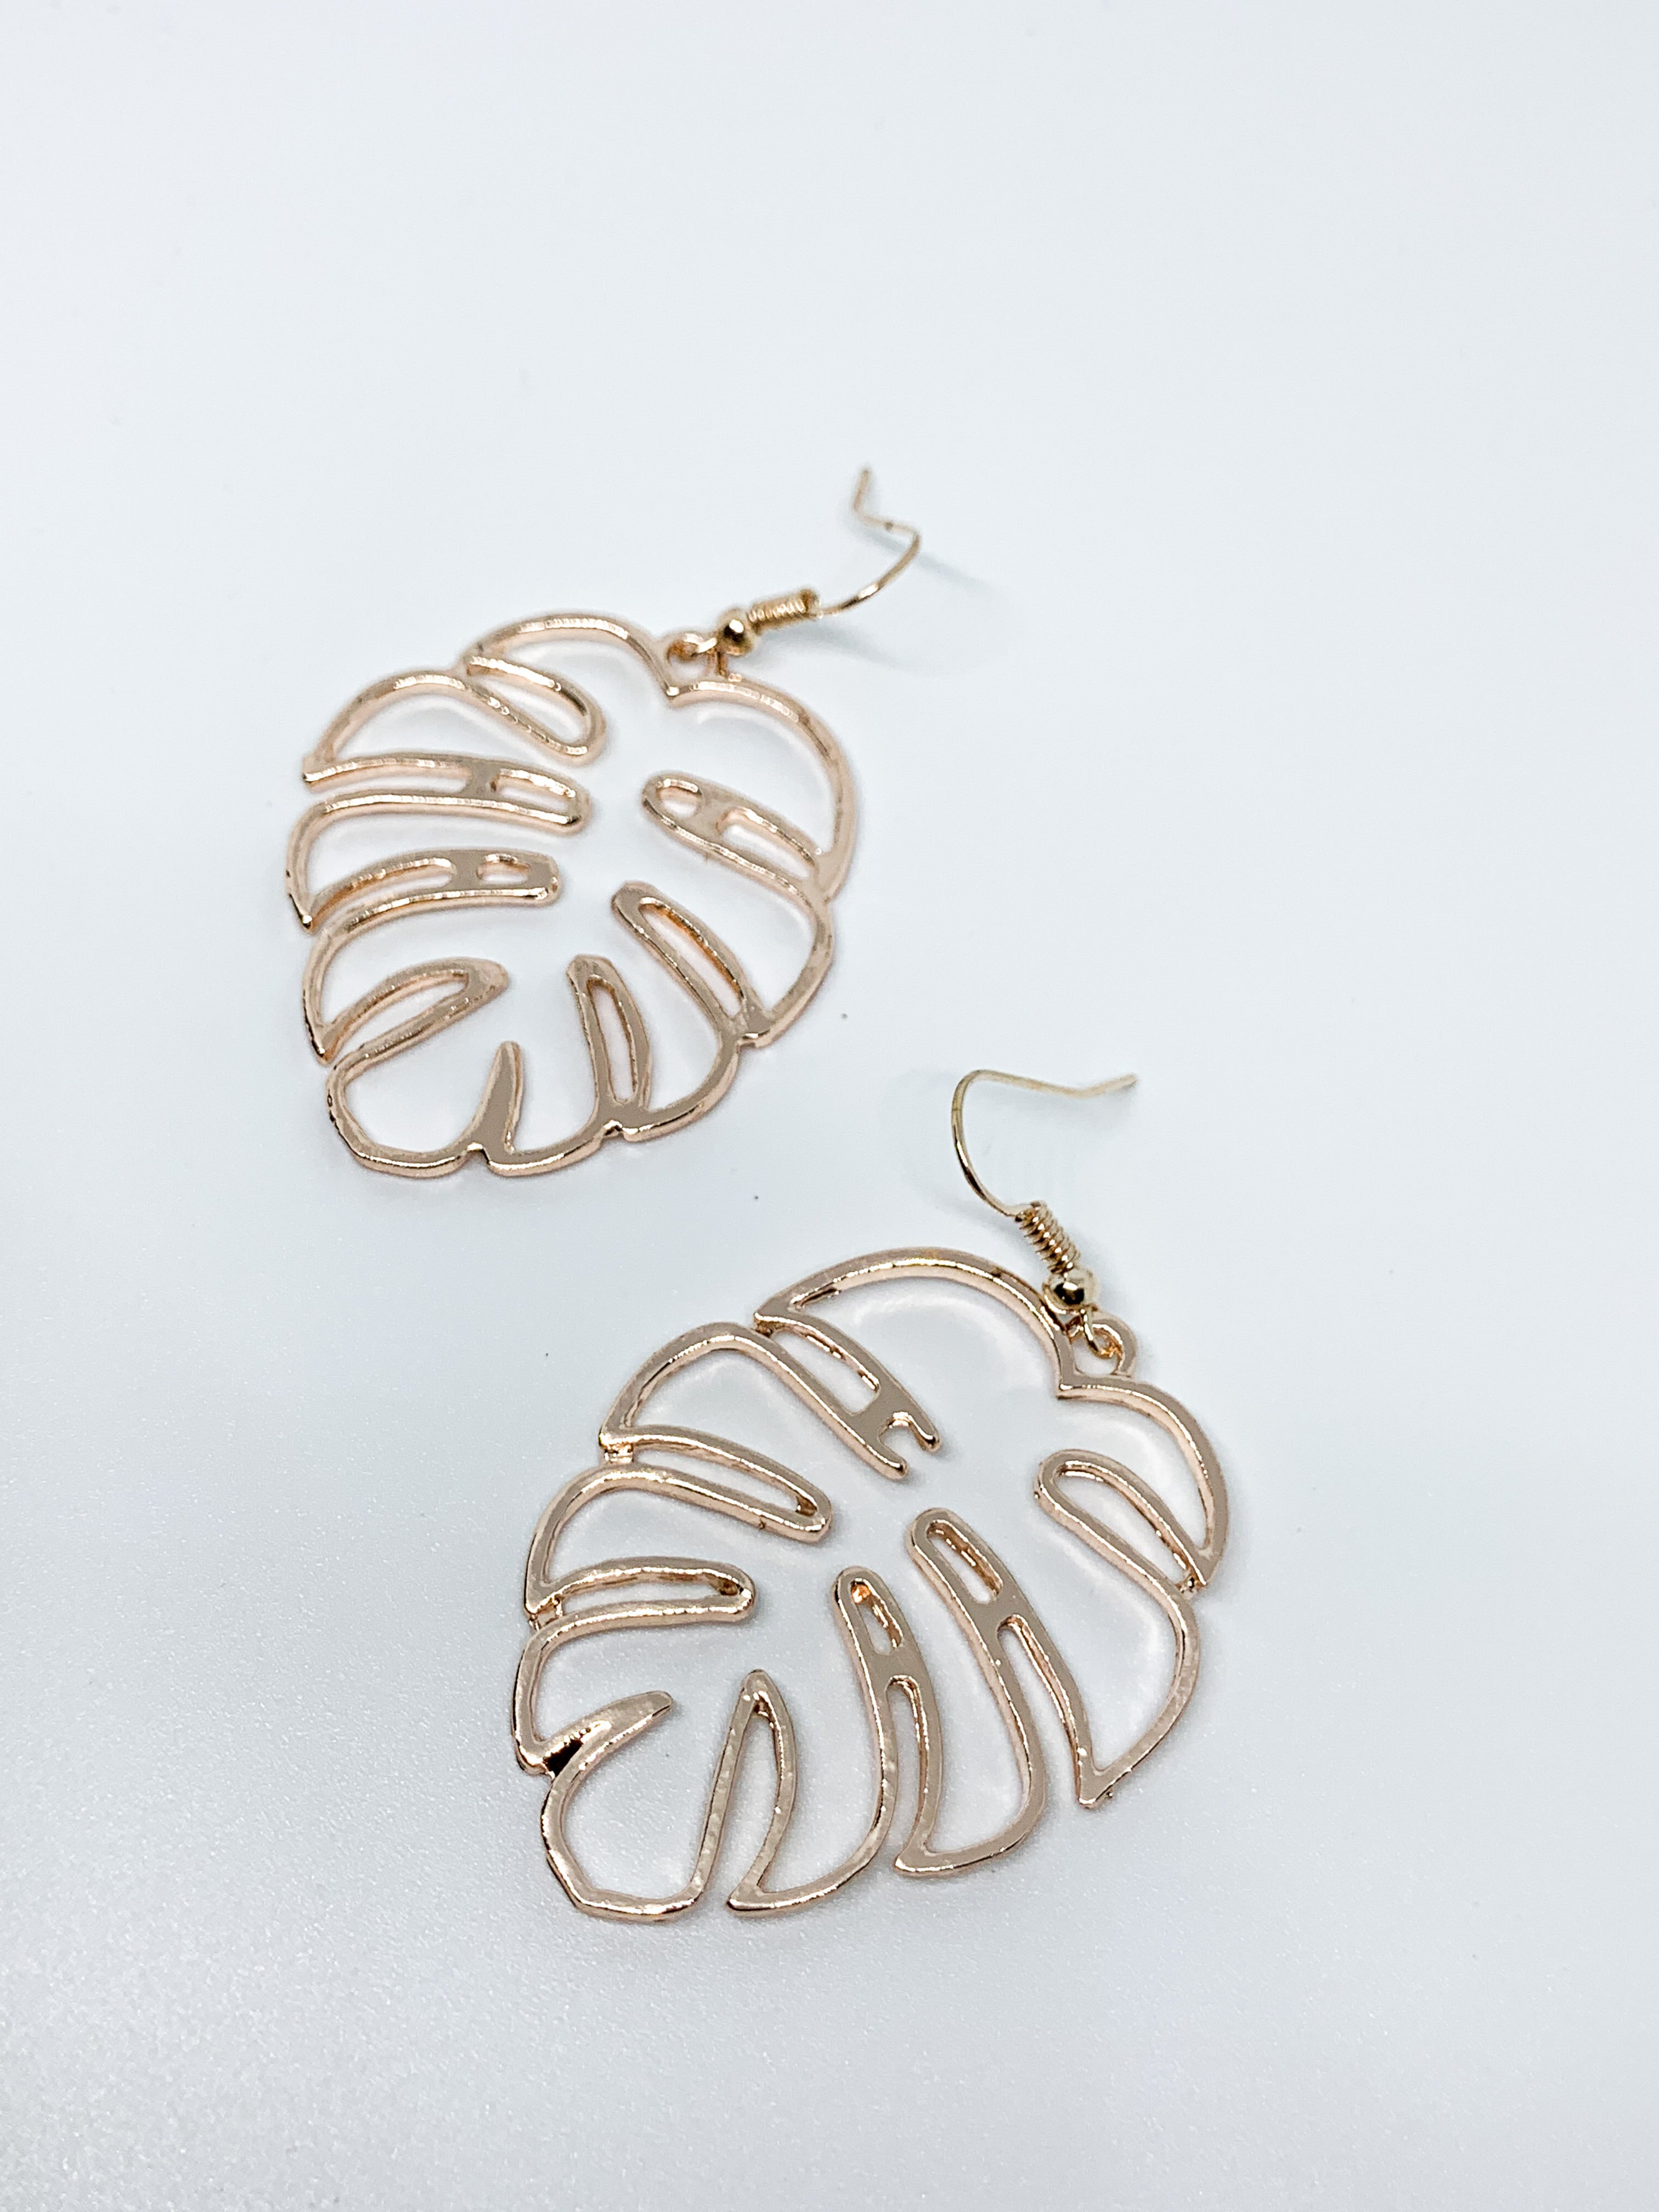 ROSE GOLD LEAF DANGLE EARRINGS - Plush Boutique